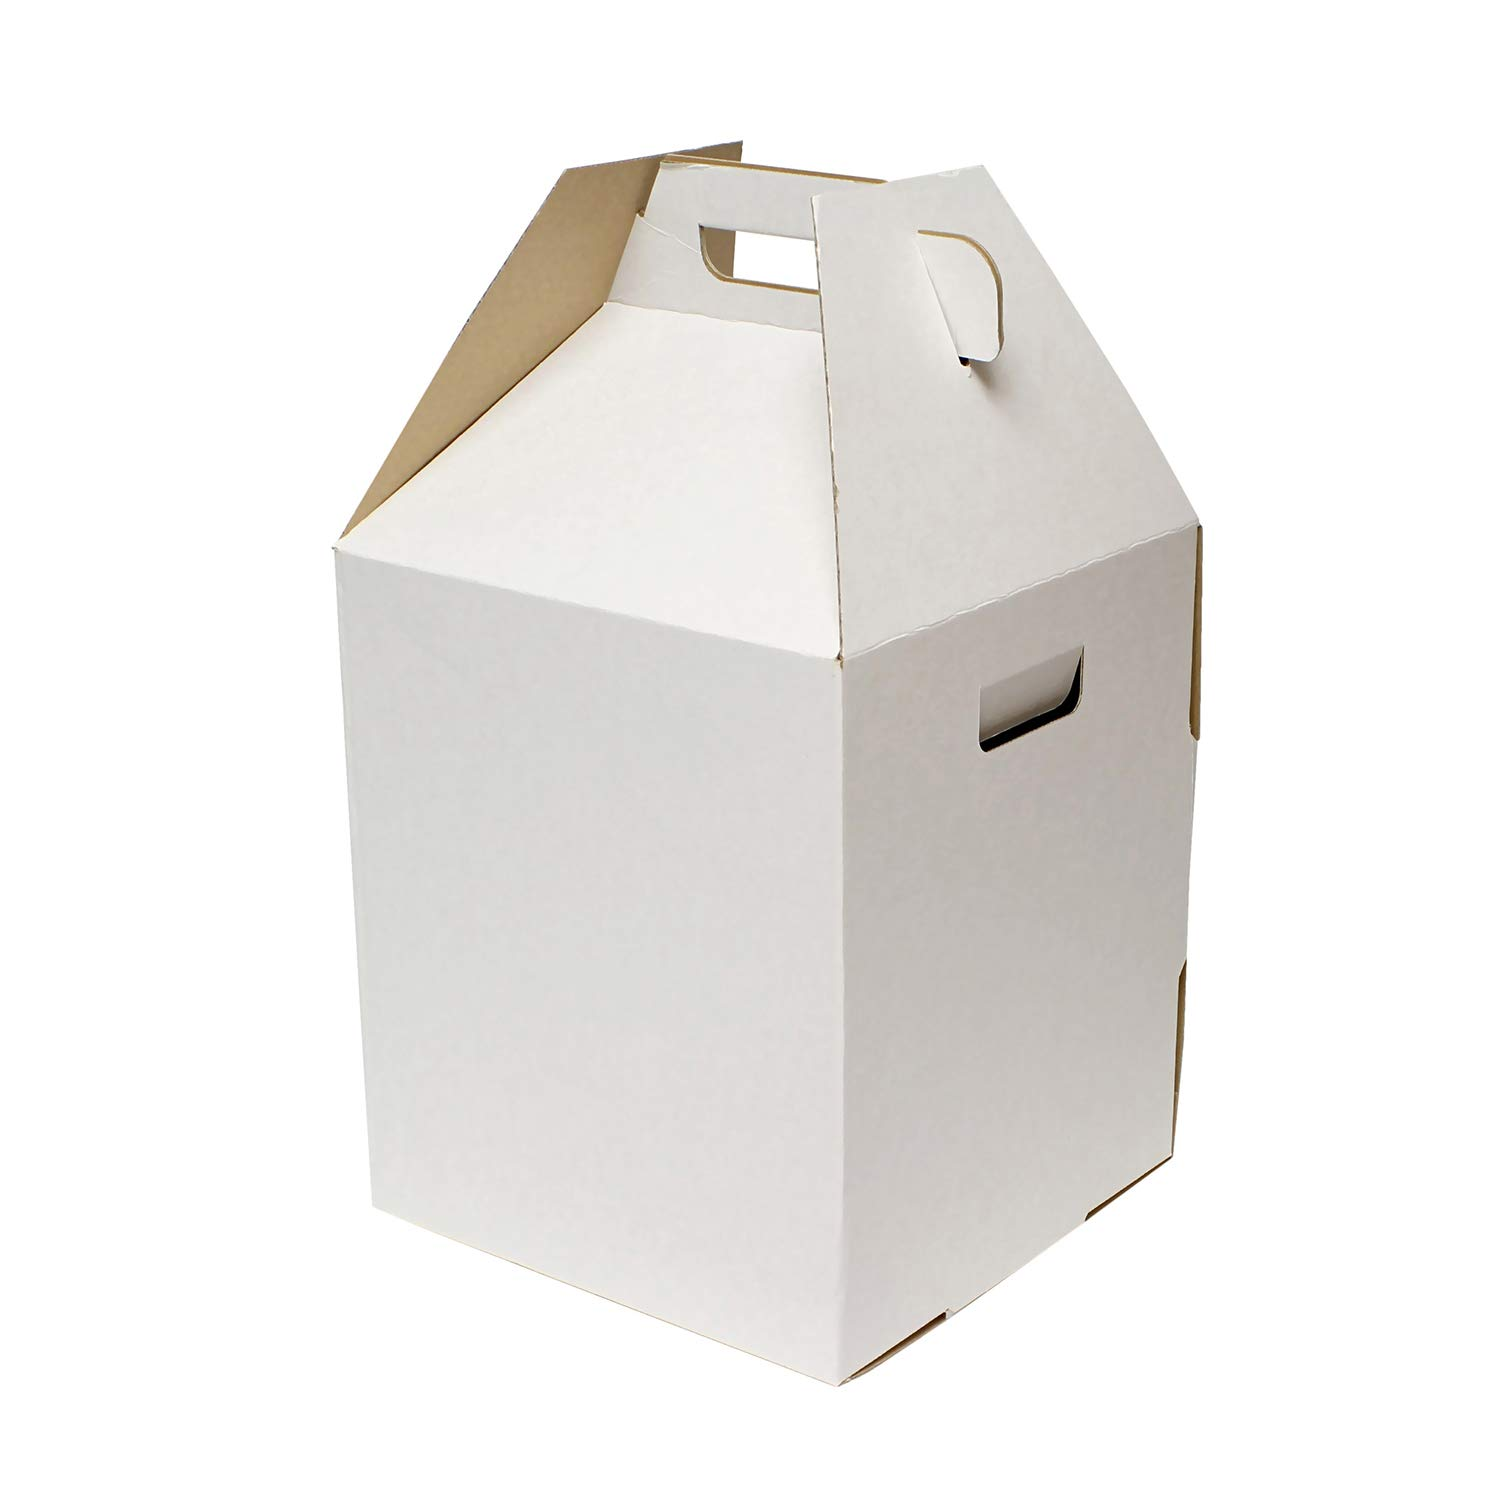 SpecialT Tiered Cake Box, 10 Pack - 10 x 10 x 12 Inch White Cake Transporter Boxes, 2 and 3 Tier Cake Box